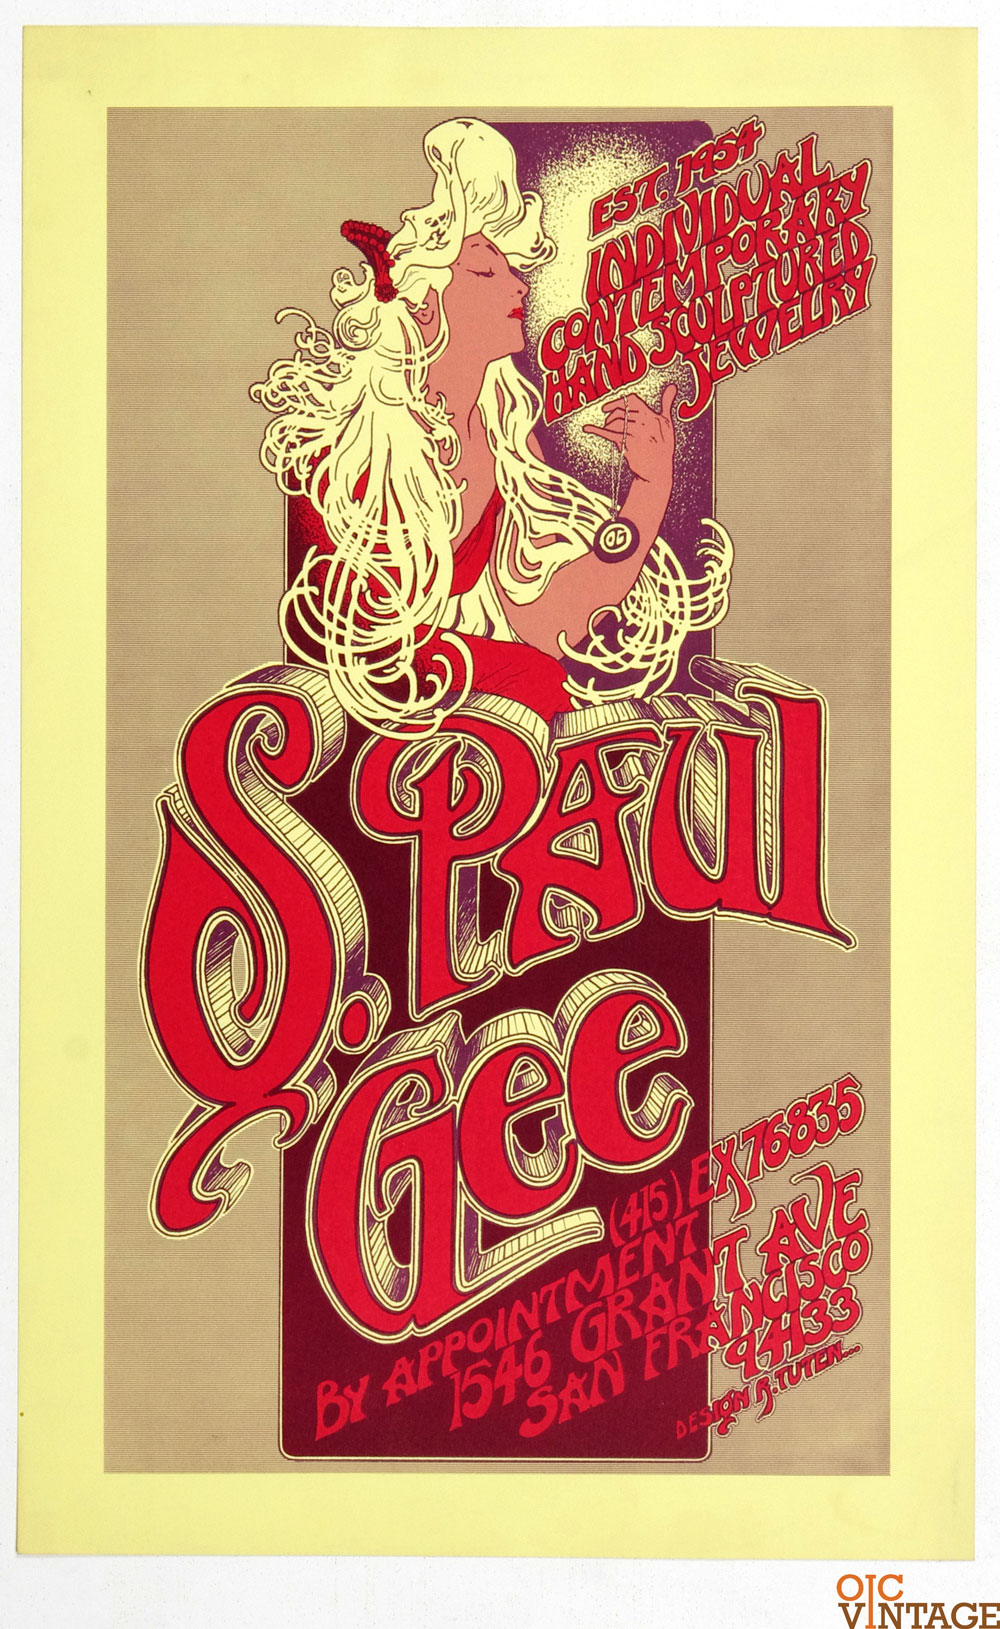 Randy Tuen Poster 1970 St. Paul Gee Jewerly Promotion